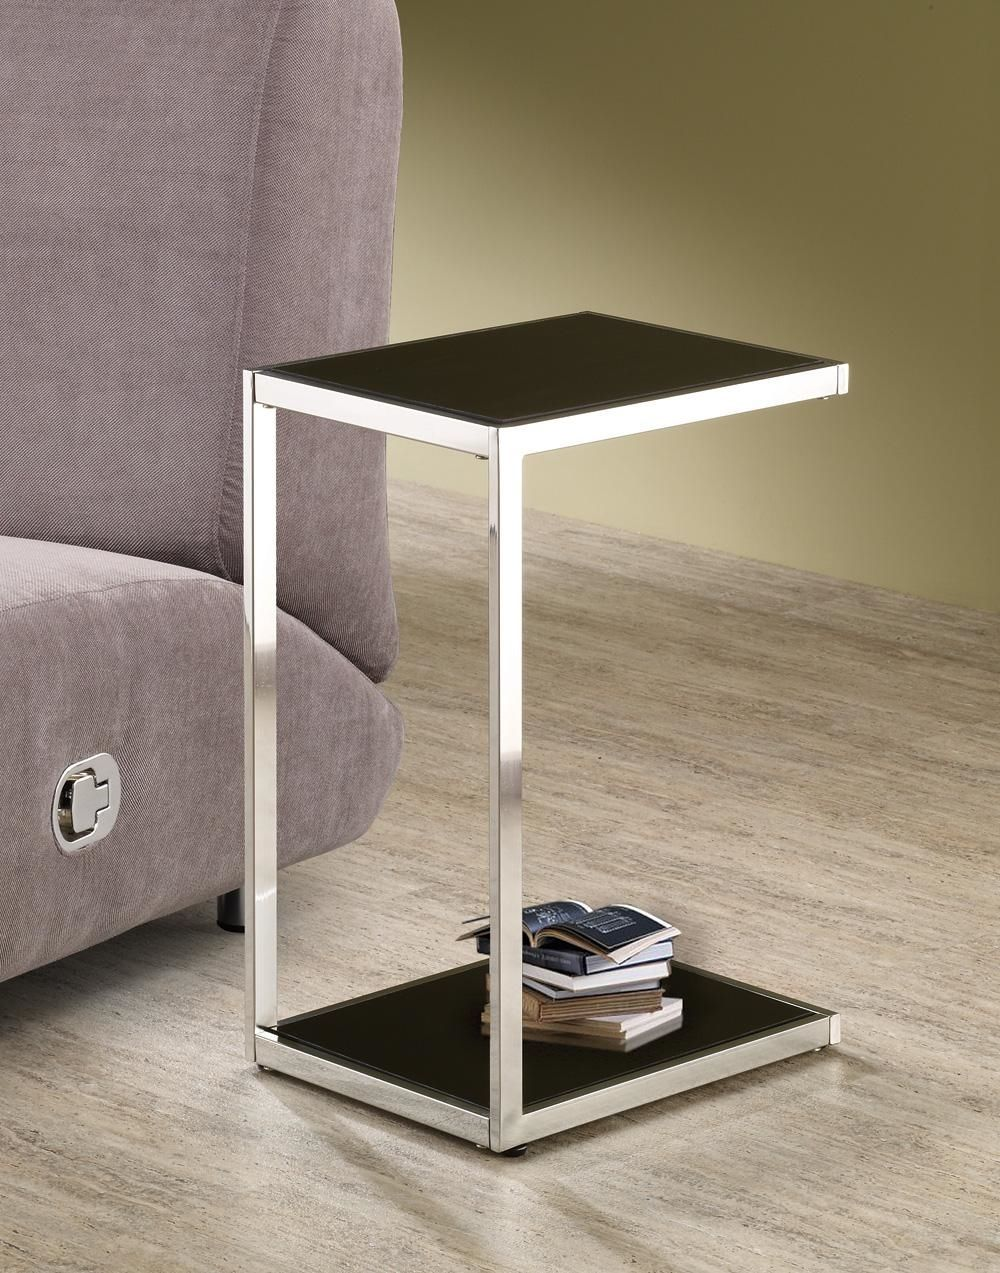 Primary image for Chrome Metal Snack Table - Reversible Black & White Shelves - Foolproof Assembly